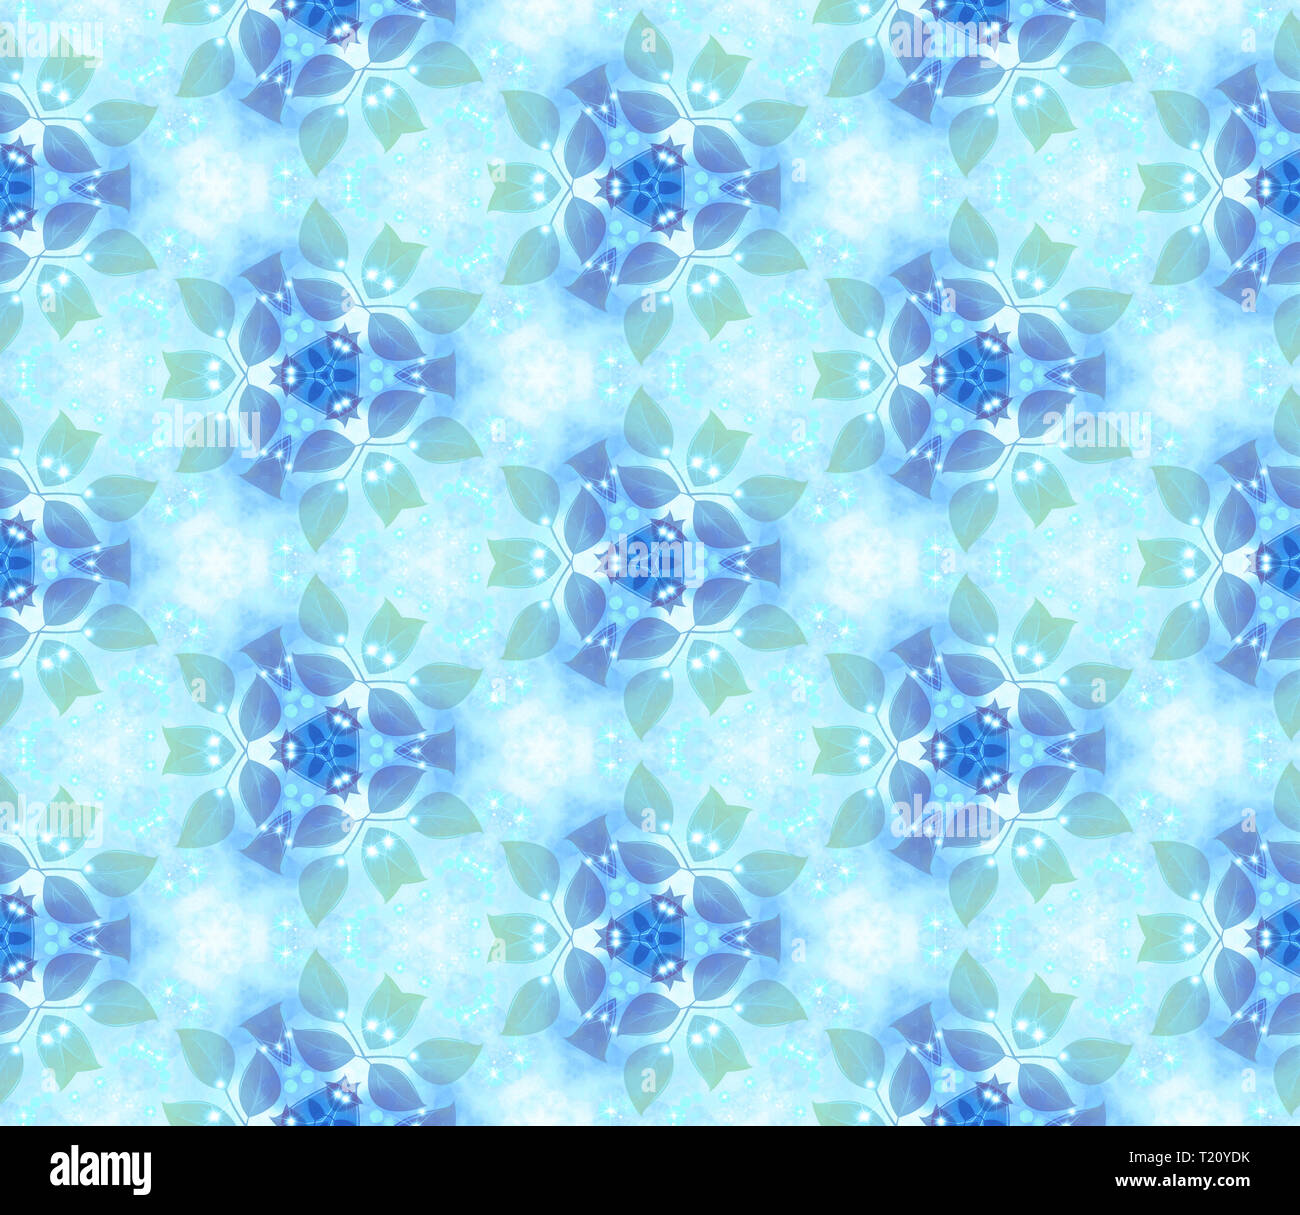 Seamless air pattern, gentle leaves, blue. Vegetable wall-paper in style of a fantasy. A romantic background for design, packing paper, greeting cards - Stock Image